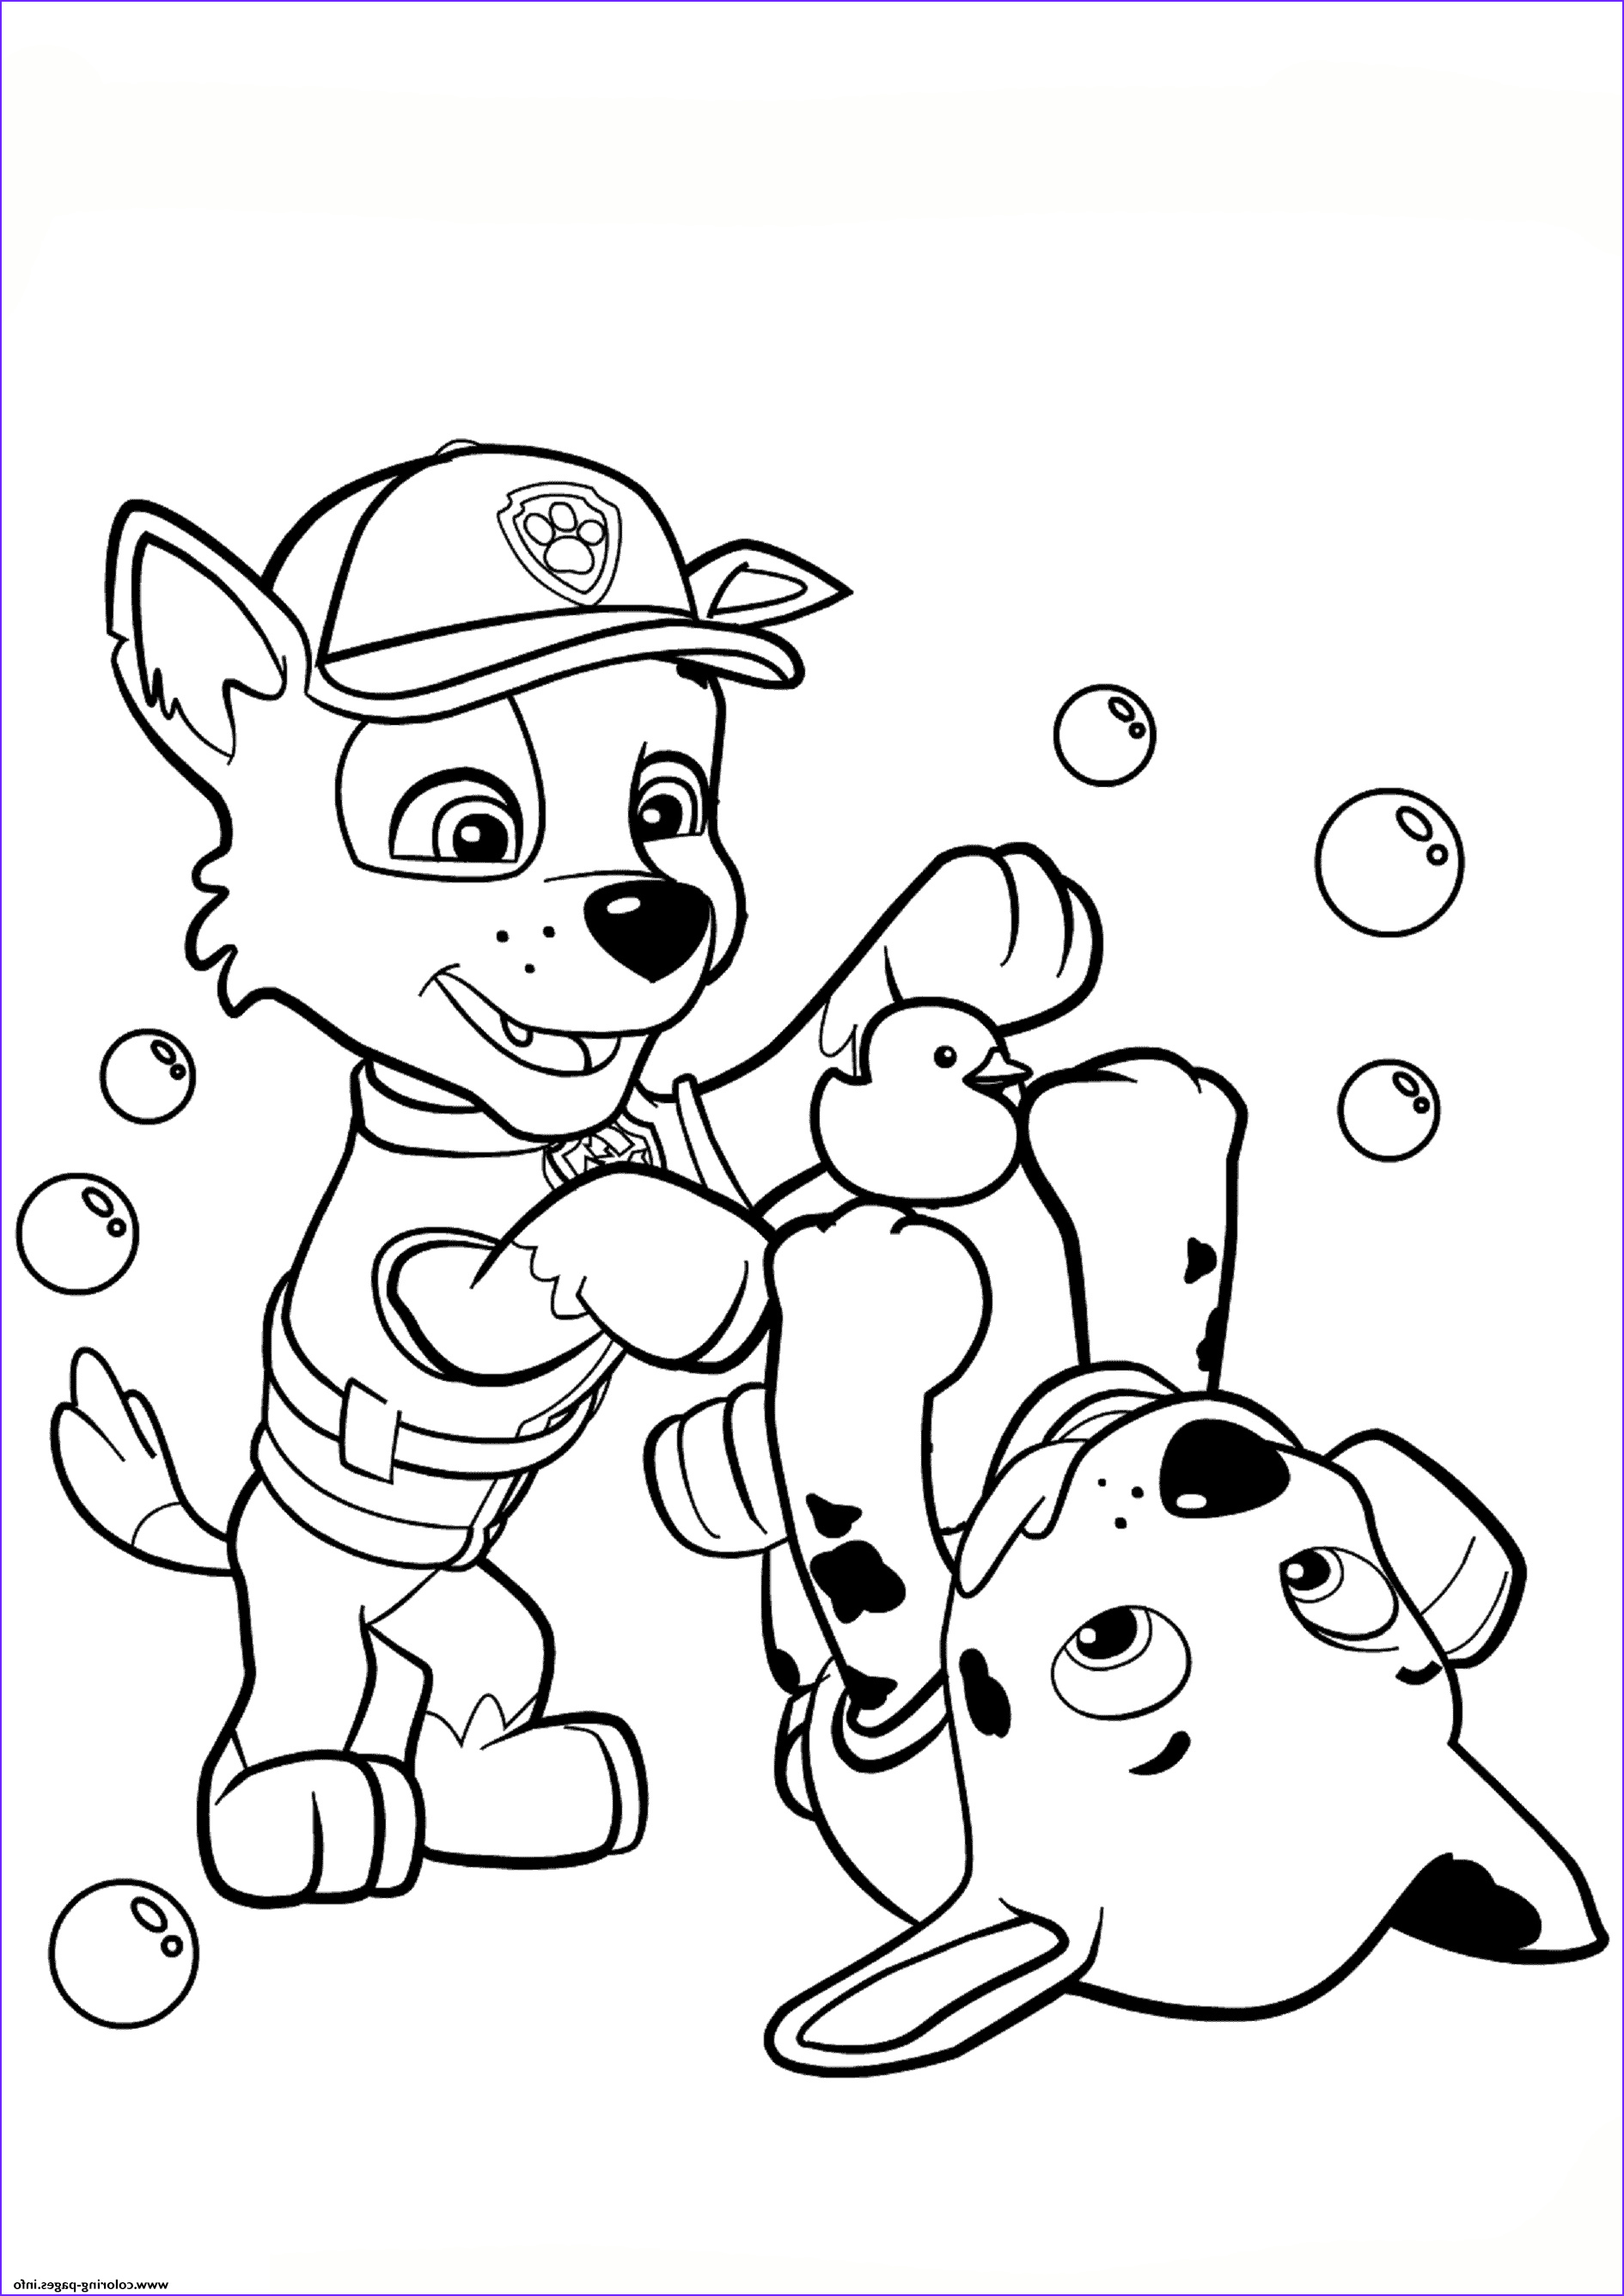 paw patrol rocky and marshall printable coloring pages book